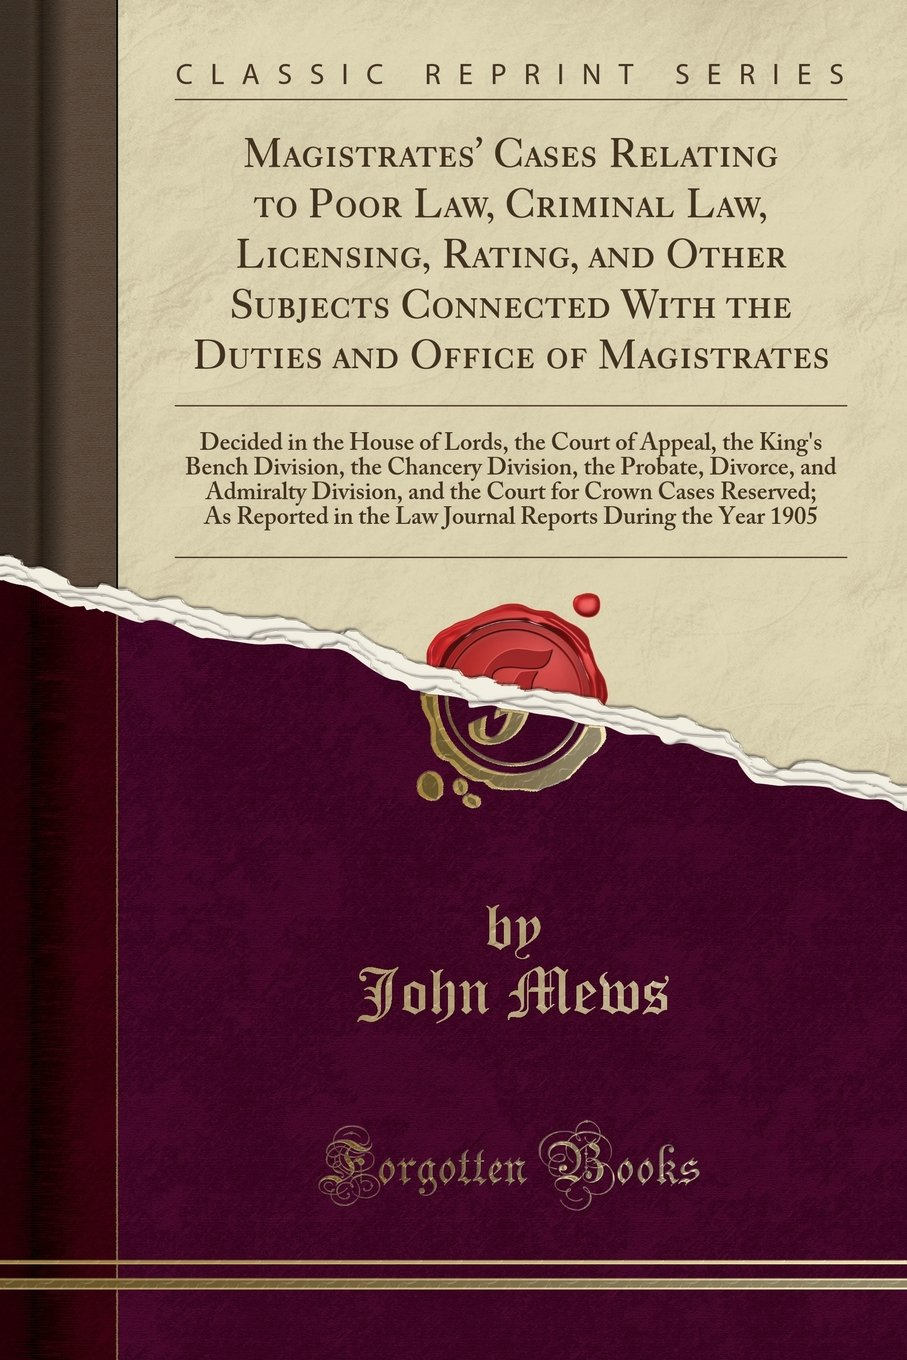 Magistrates' Cases Relating to Poor Law, Criminal Law, Licensing, Rating, and Other Subjects Connected With the Duties and Office of Magistrates: ... Division, the Chancery Division, the Pro pdf epub